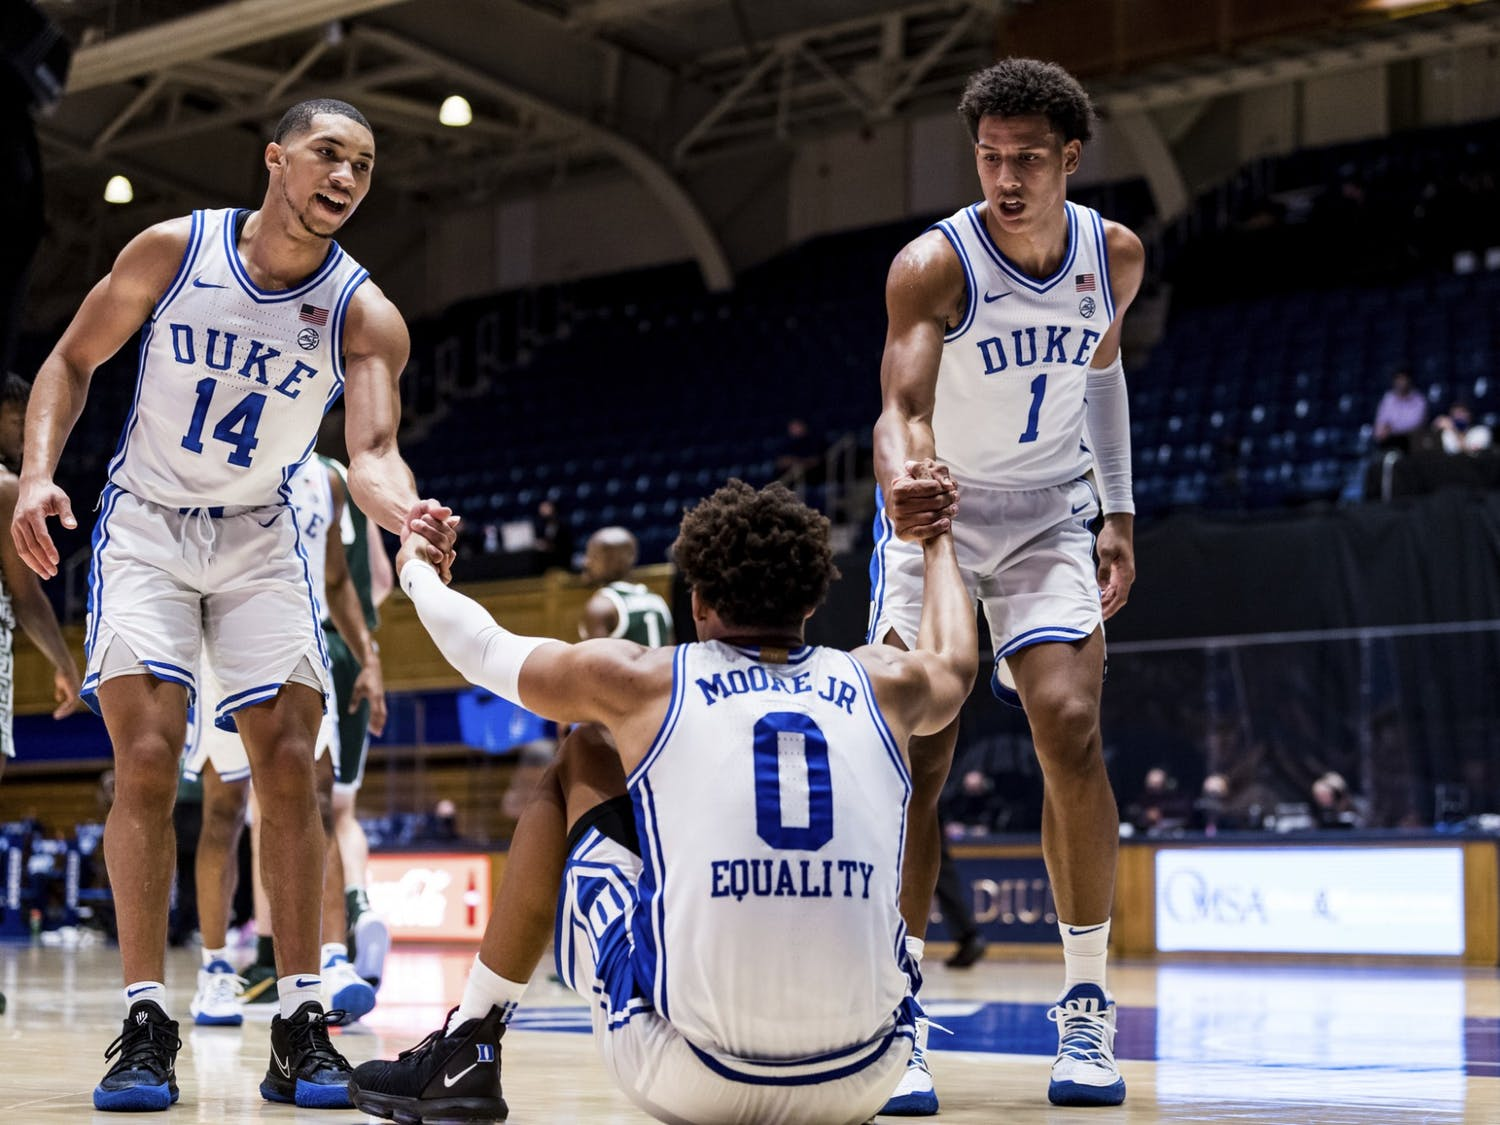 Duke needs a bounceback performance against Bellarmine this Friday and it all starts with the veterans taking charge.